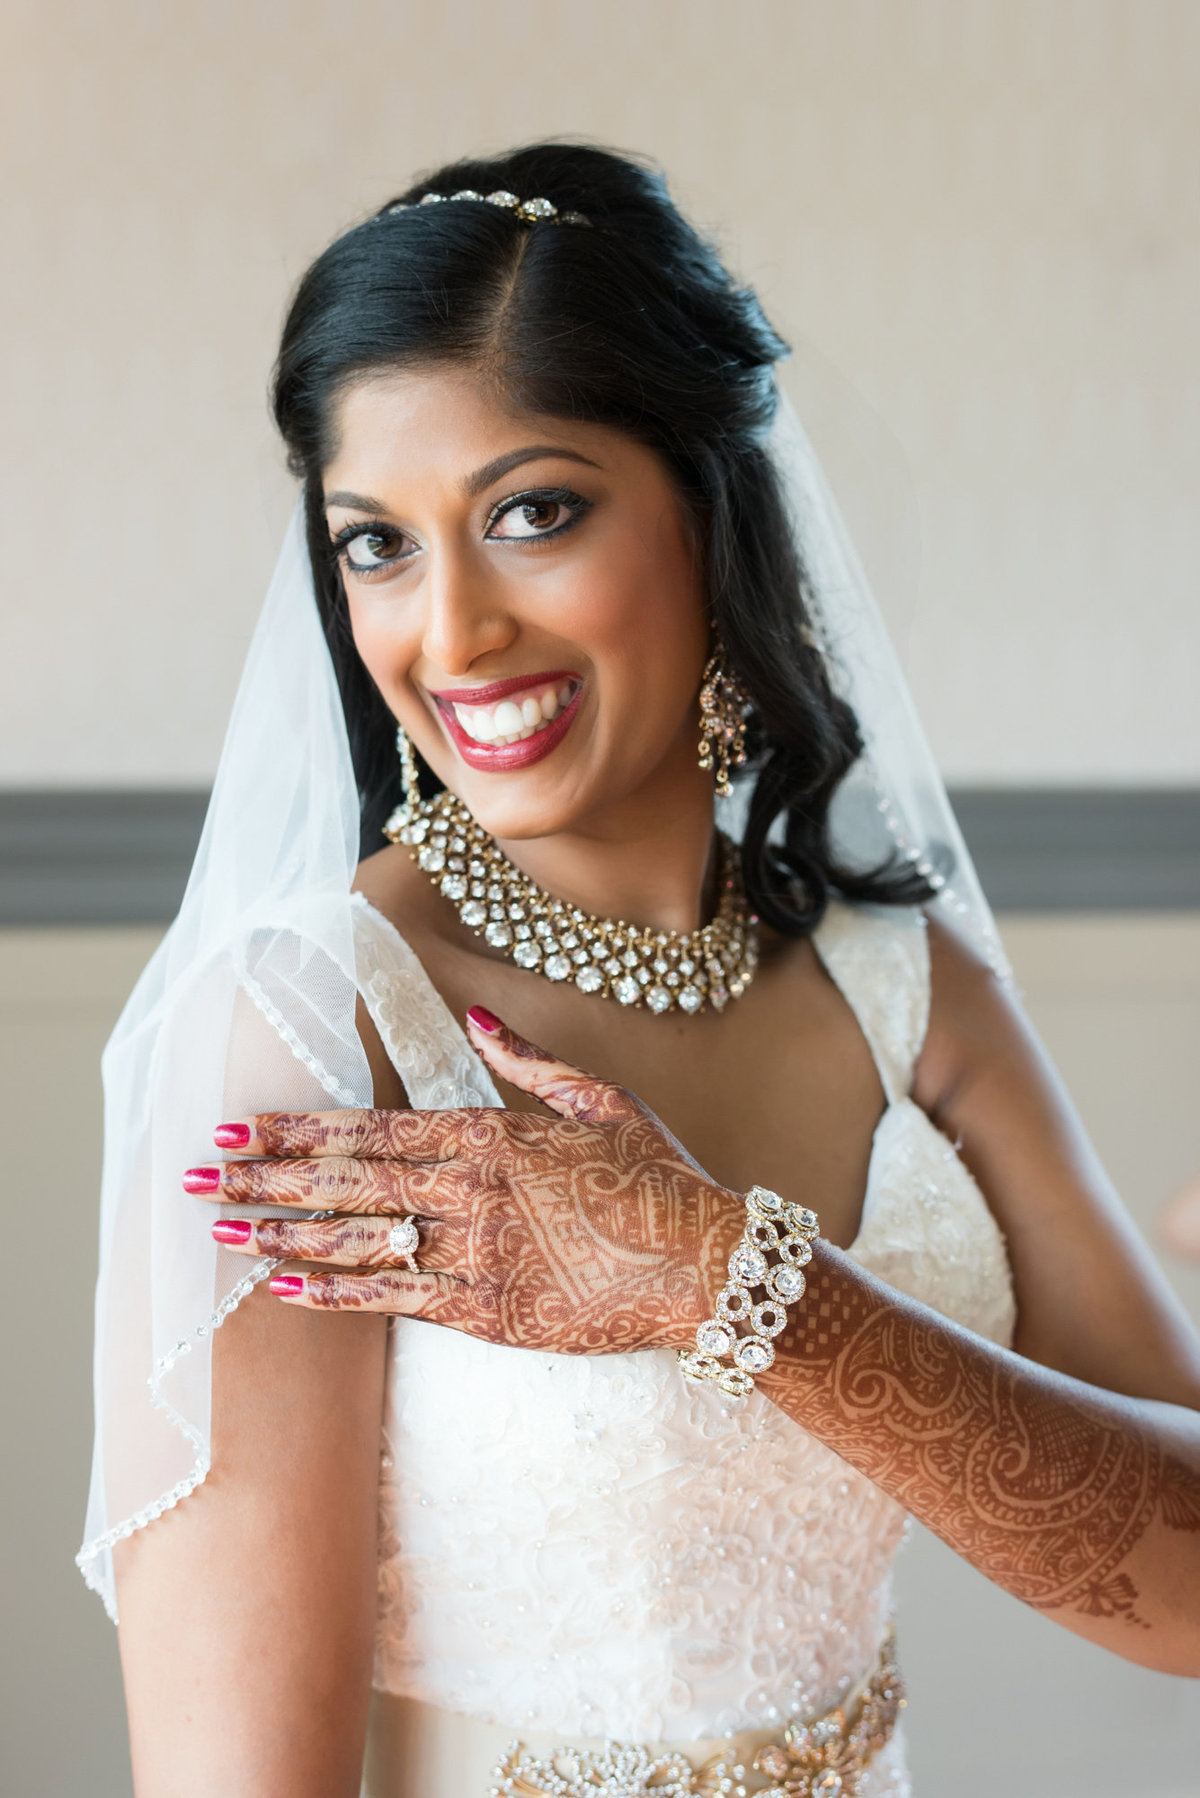 christian-indian-wedding-0001